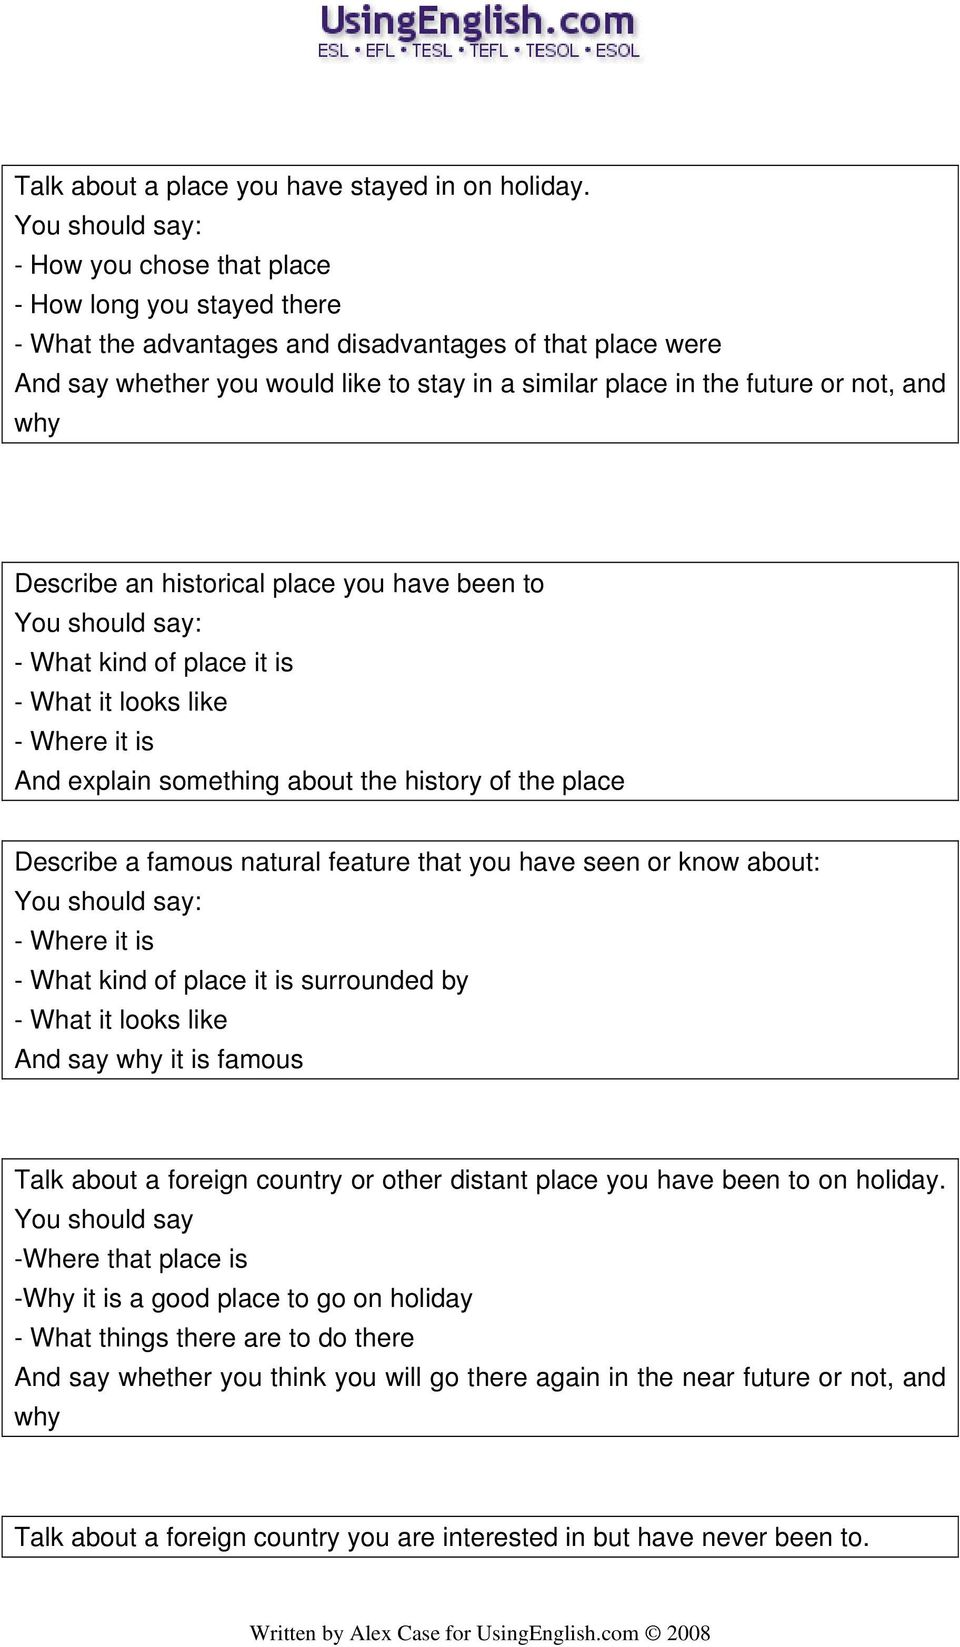 why Describe an historical place you have been to - What kind of place it is - Where it is And explain something about the history of the place Describe a famous natural feature that you have seen or